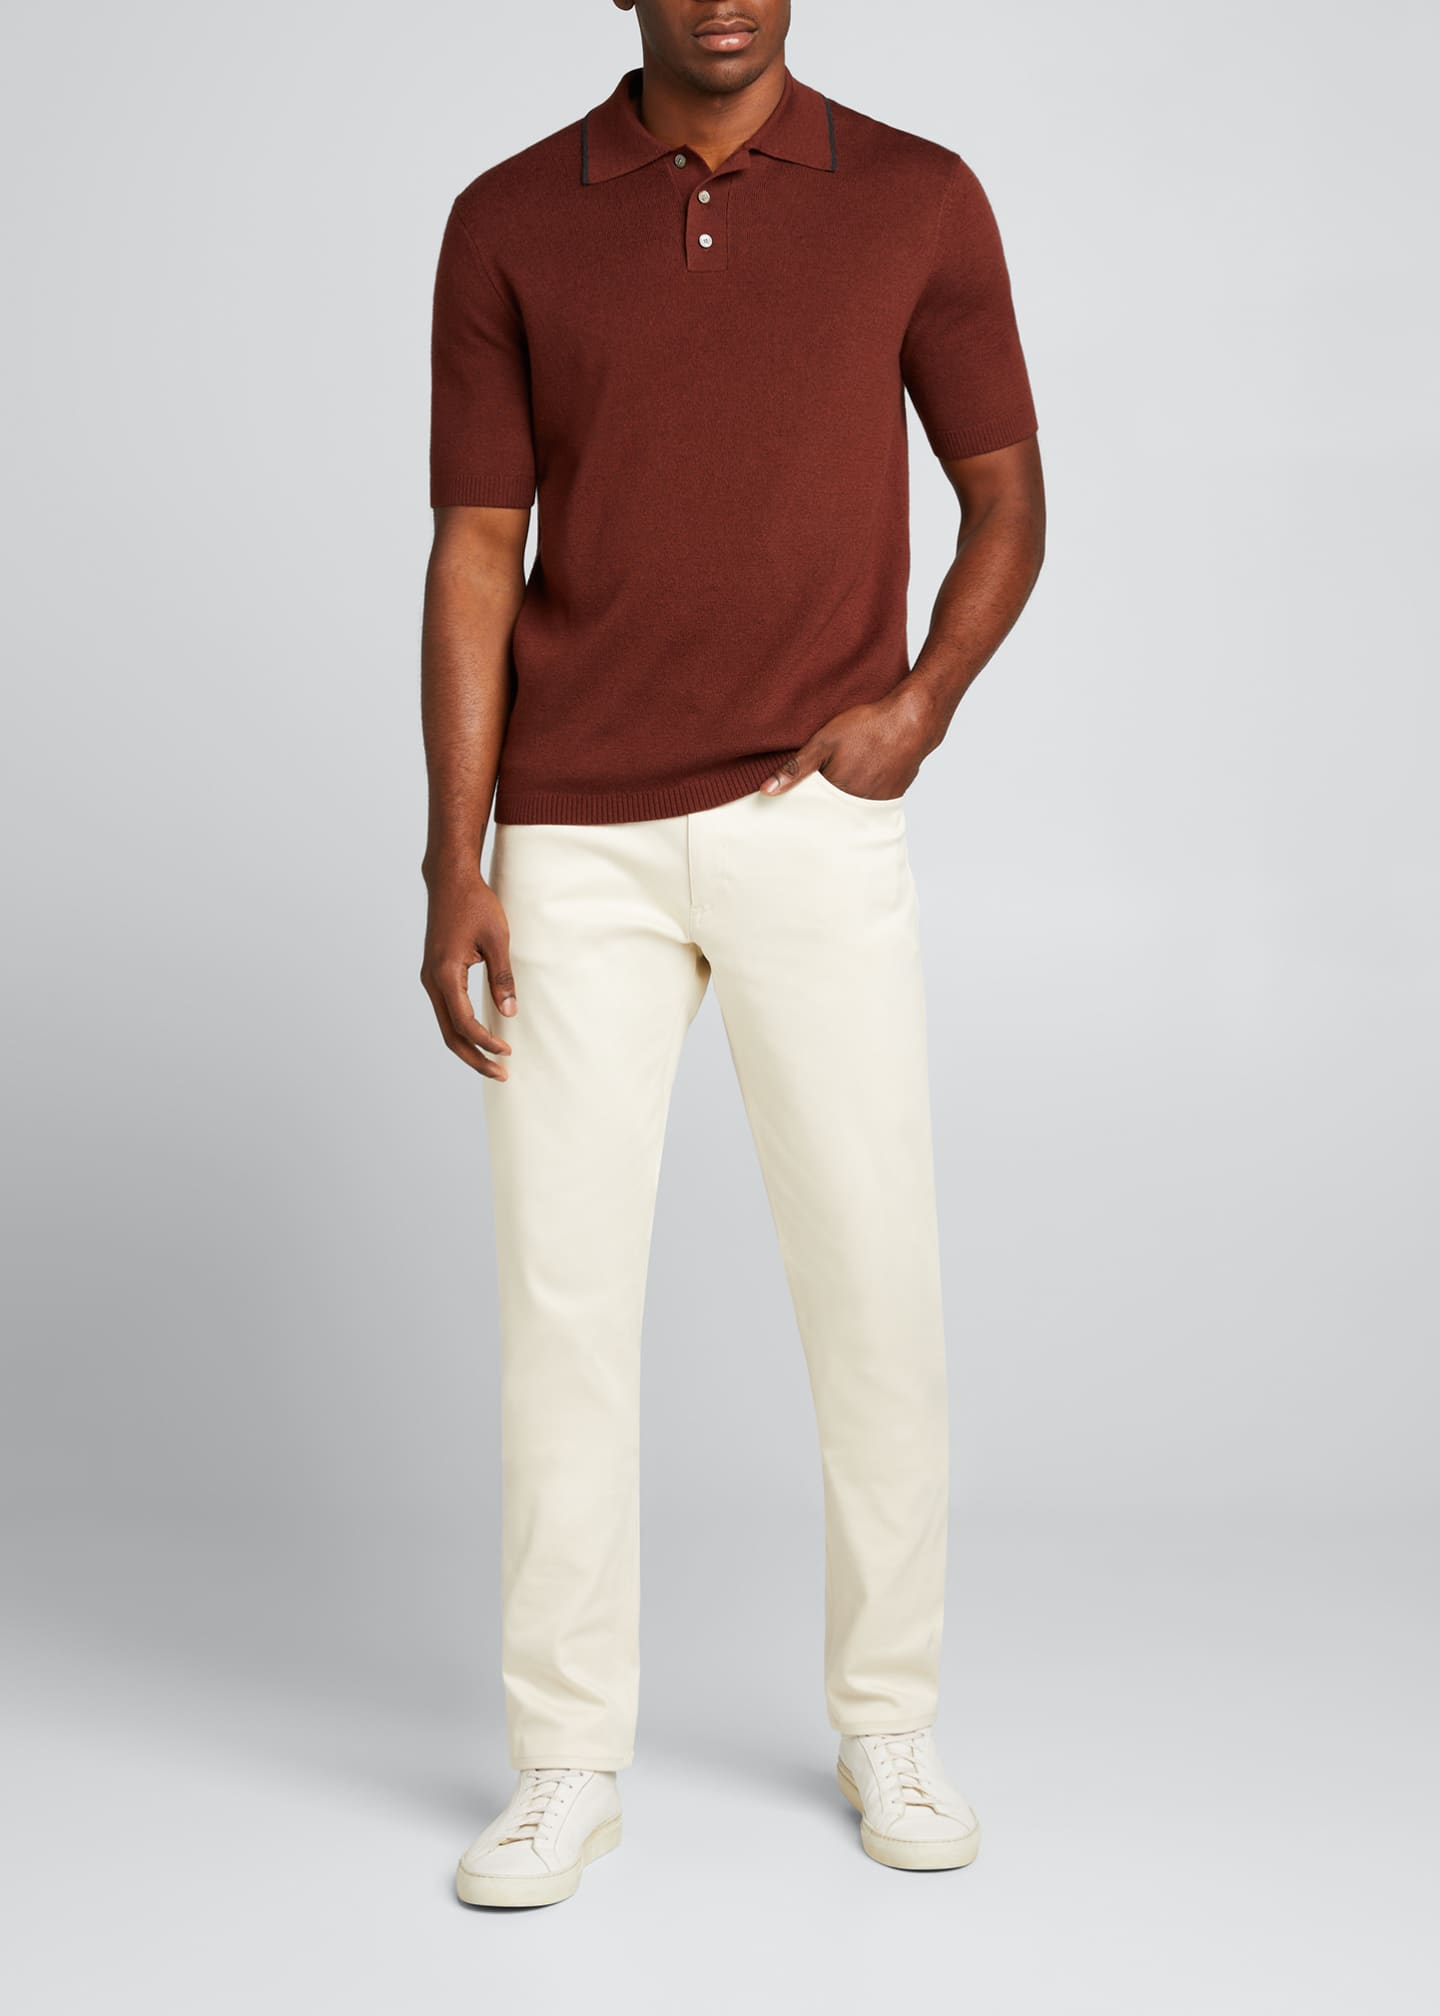 Image 1 of 5: Lassen Cotton Short-Sleeve Polo Shirt